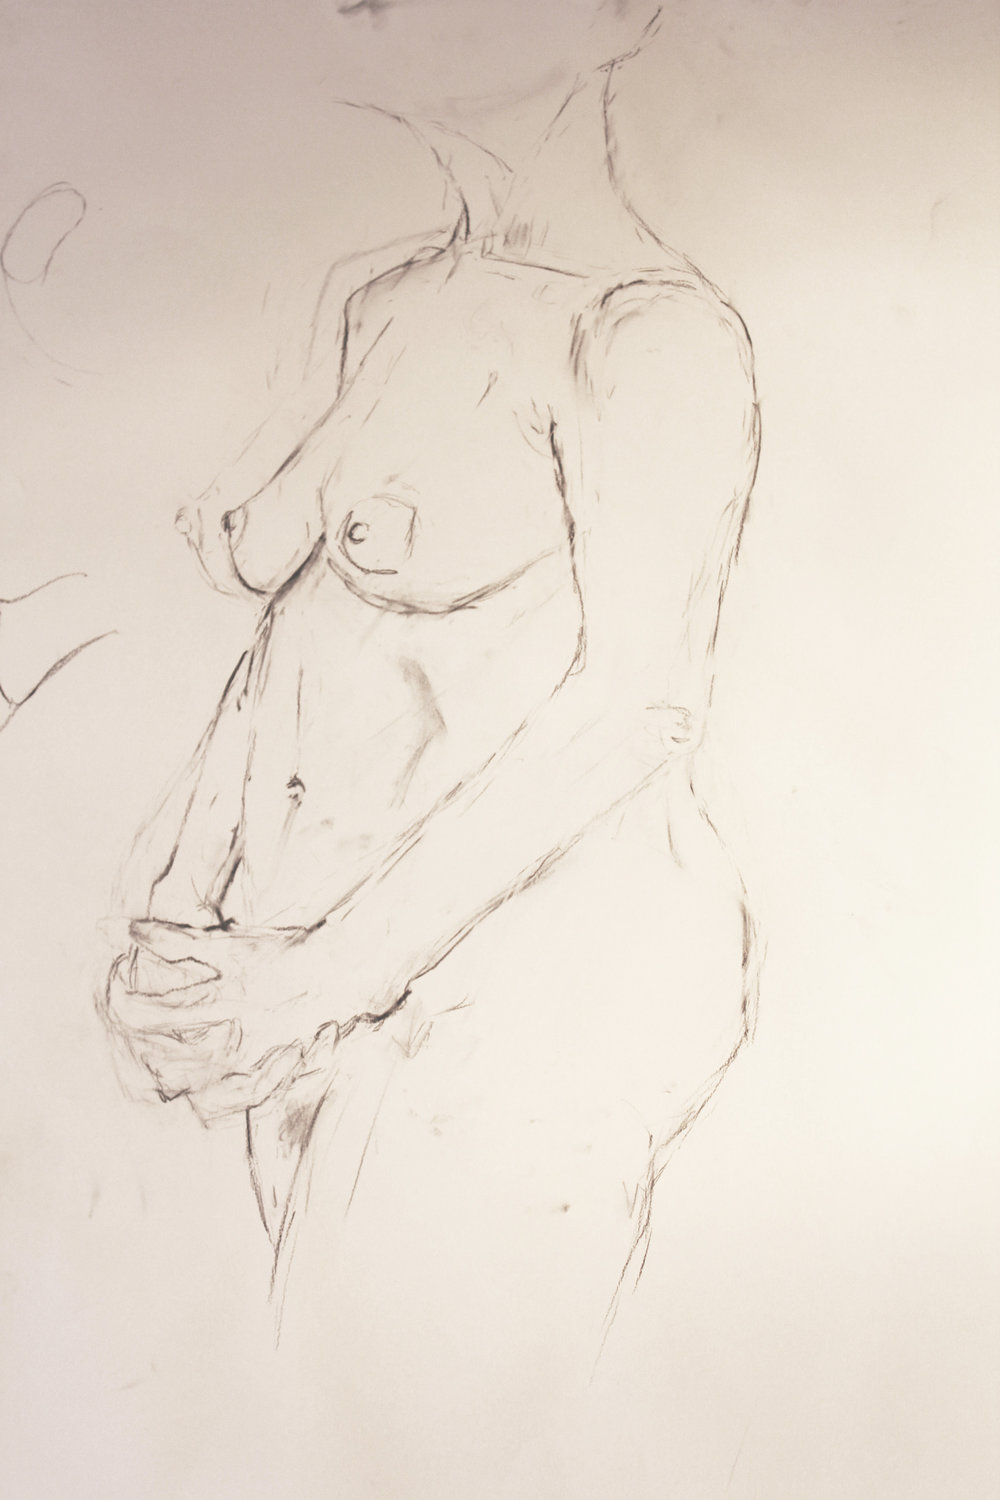 Lifedrawing8.jpg